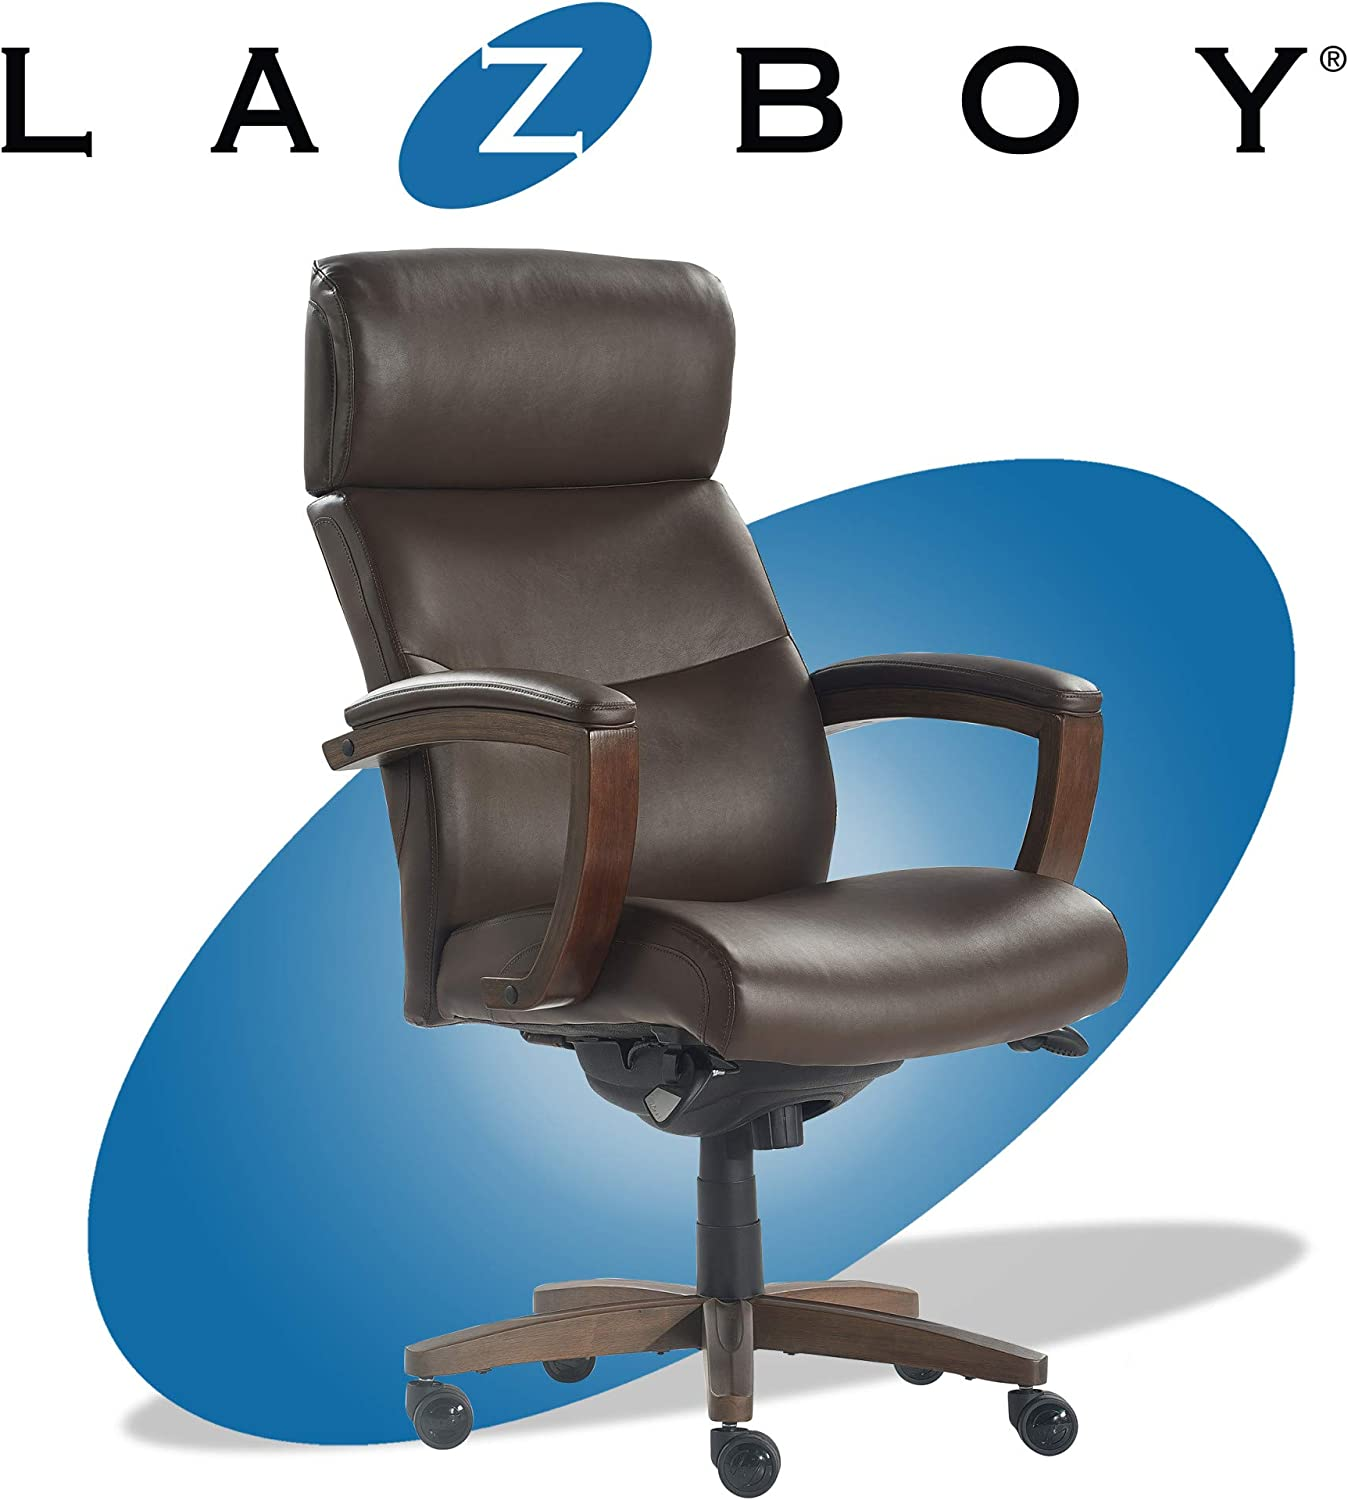 La-Z-Boy Greyson Modern Executive Office Chair, Solid Wood Arms and Wheeled Base, Ergonomic High-Back Lumbar Support, Bonded Leather, Brown